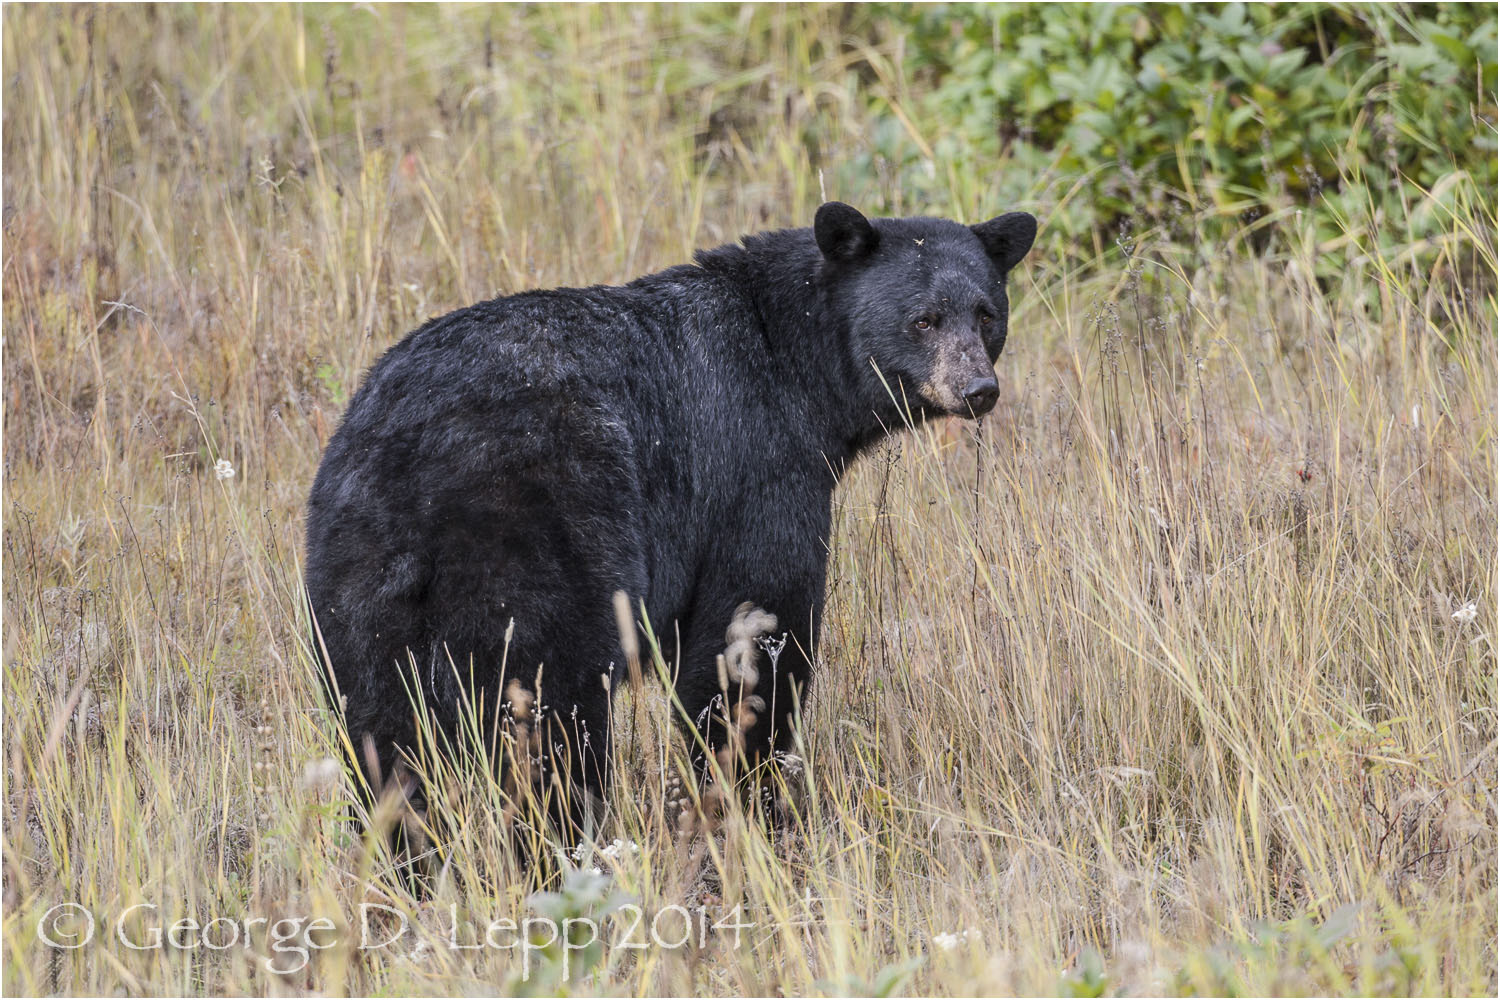 Black Bear, British Columbia, Canada. © George D. Lepp 2014 M-BE-BL-0036